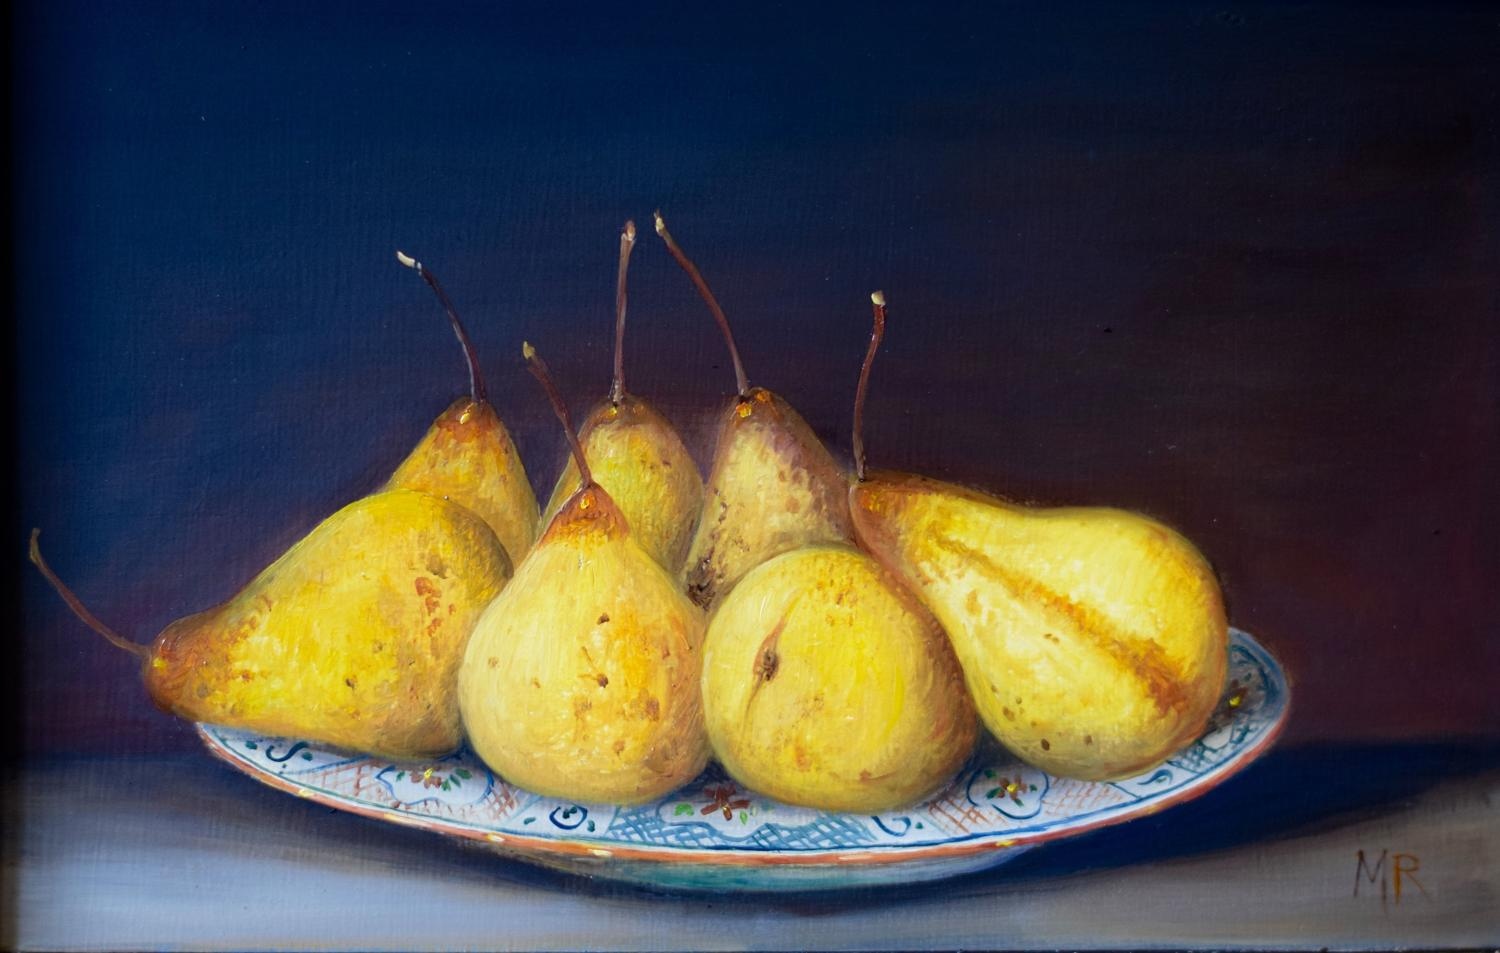 Plate of pears